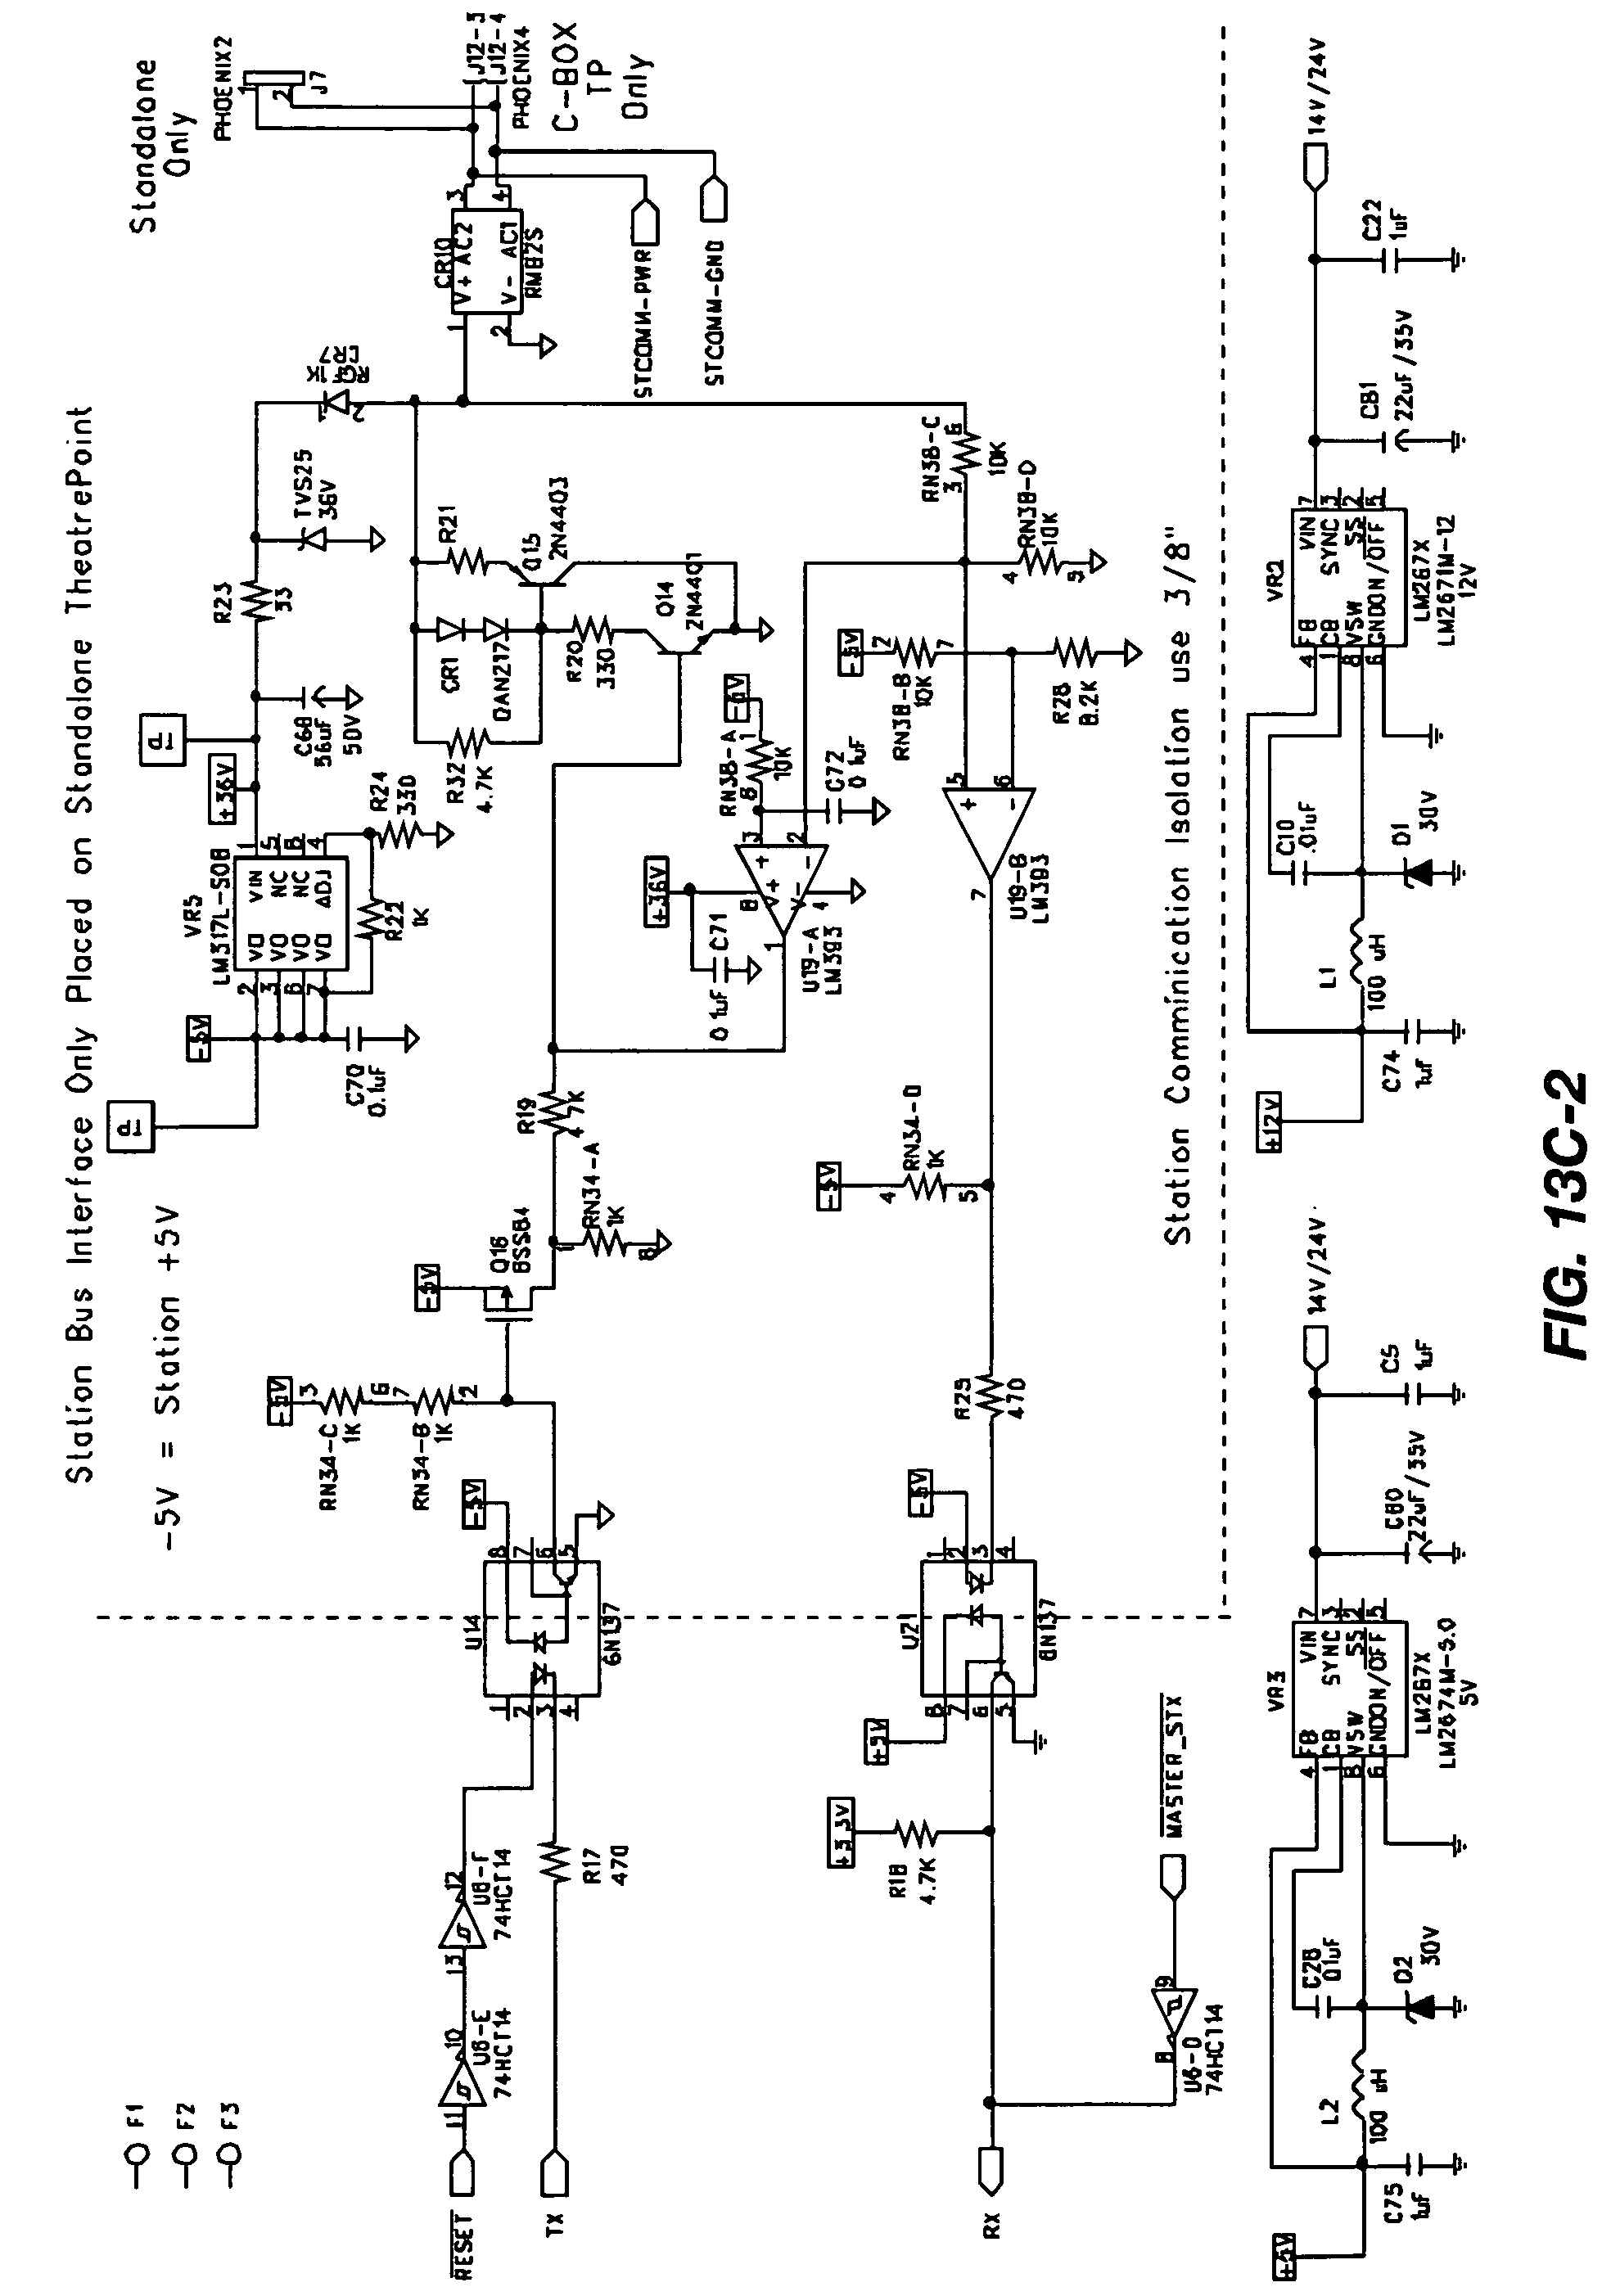 Legrand Transformer Wiring Diagram : 34 Wiring Diagram